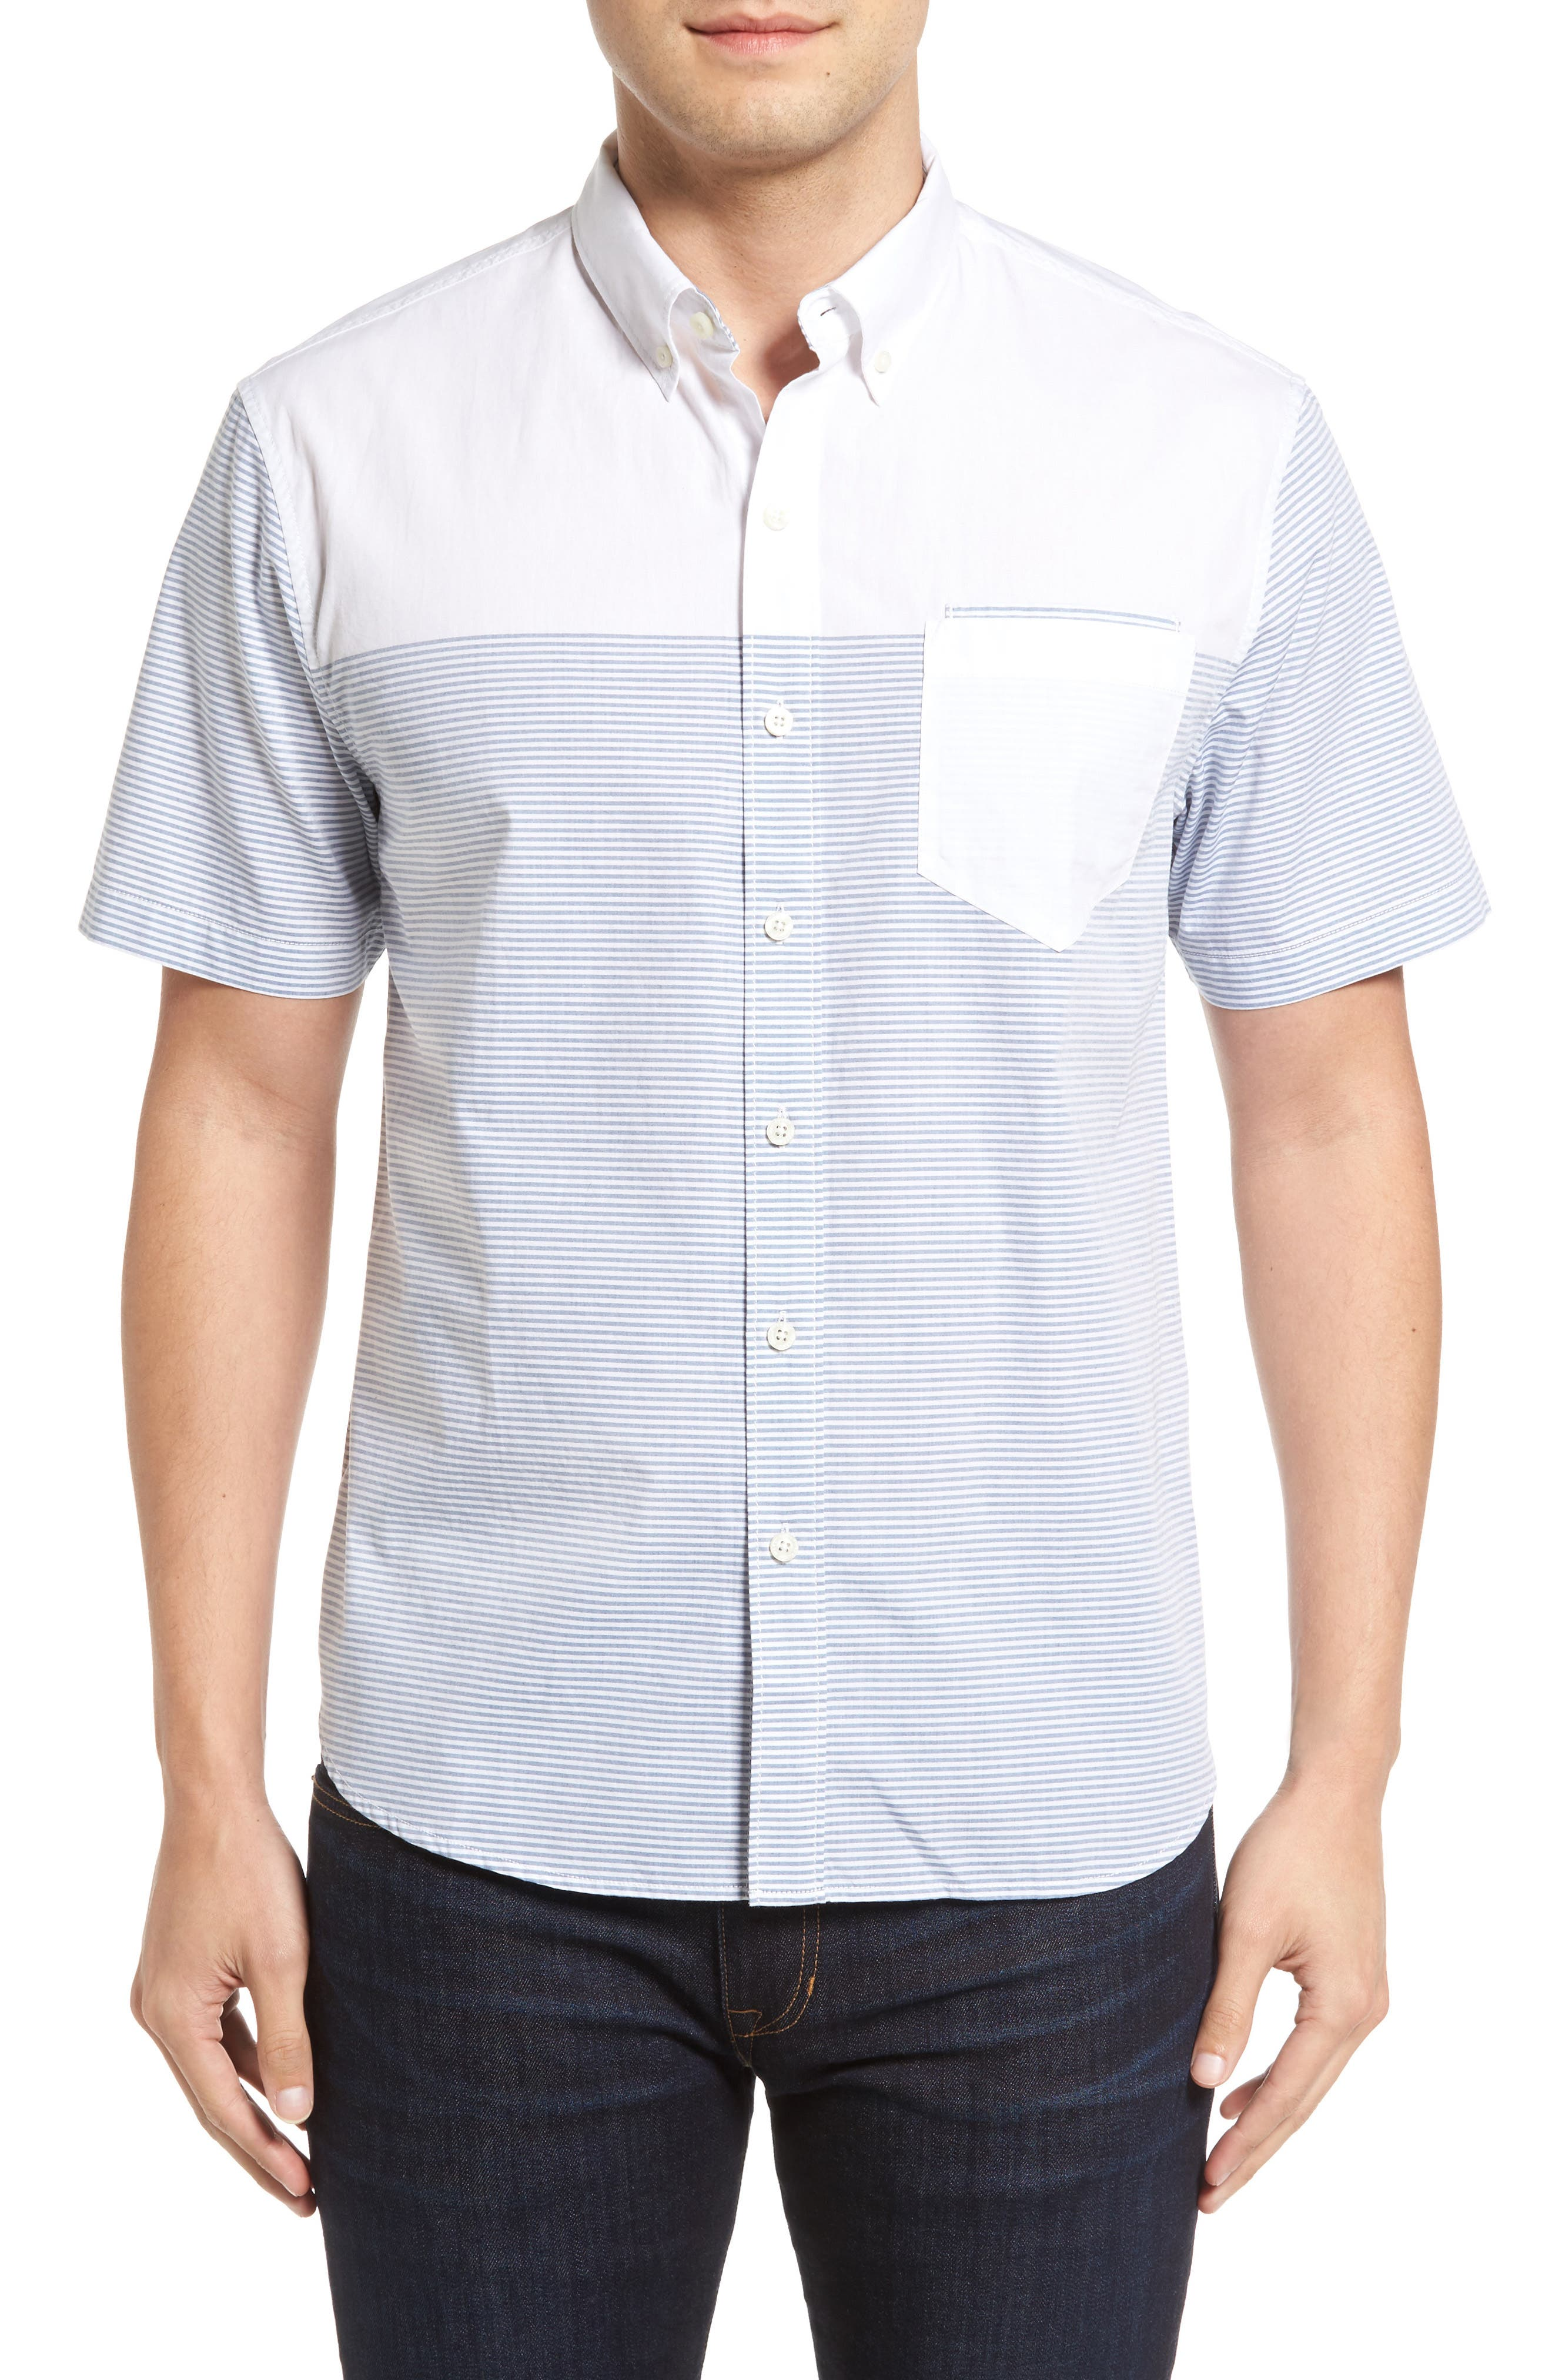 Alternate Image 1 Selected - Tommy Bahama The Yachtsman Standard Fit Cotton Sport Shirt